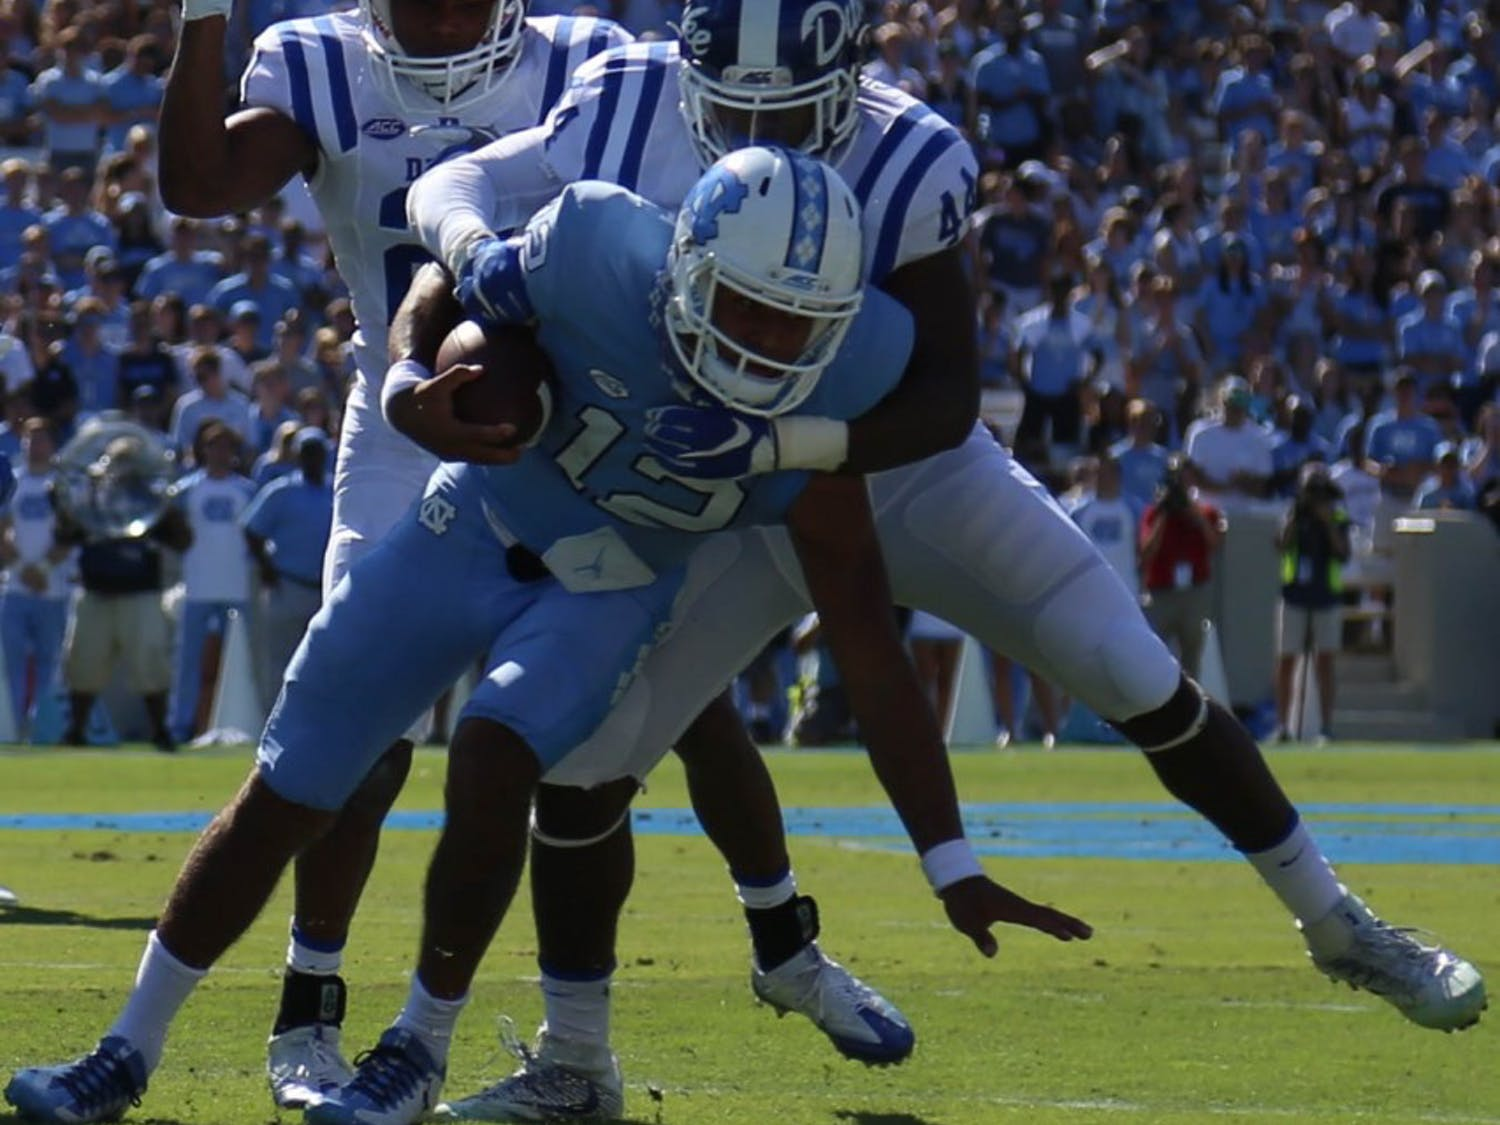 Quarterback Chazz Surratt (12) gets wrapped up by Duke defenders on Saturday.